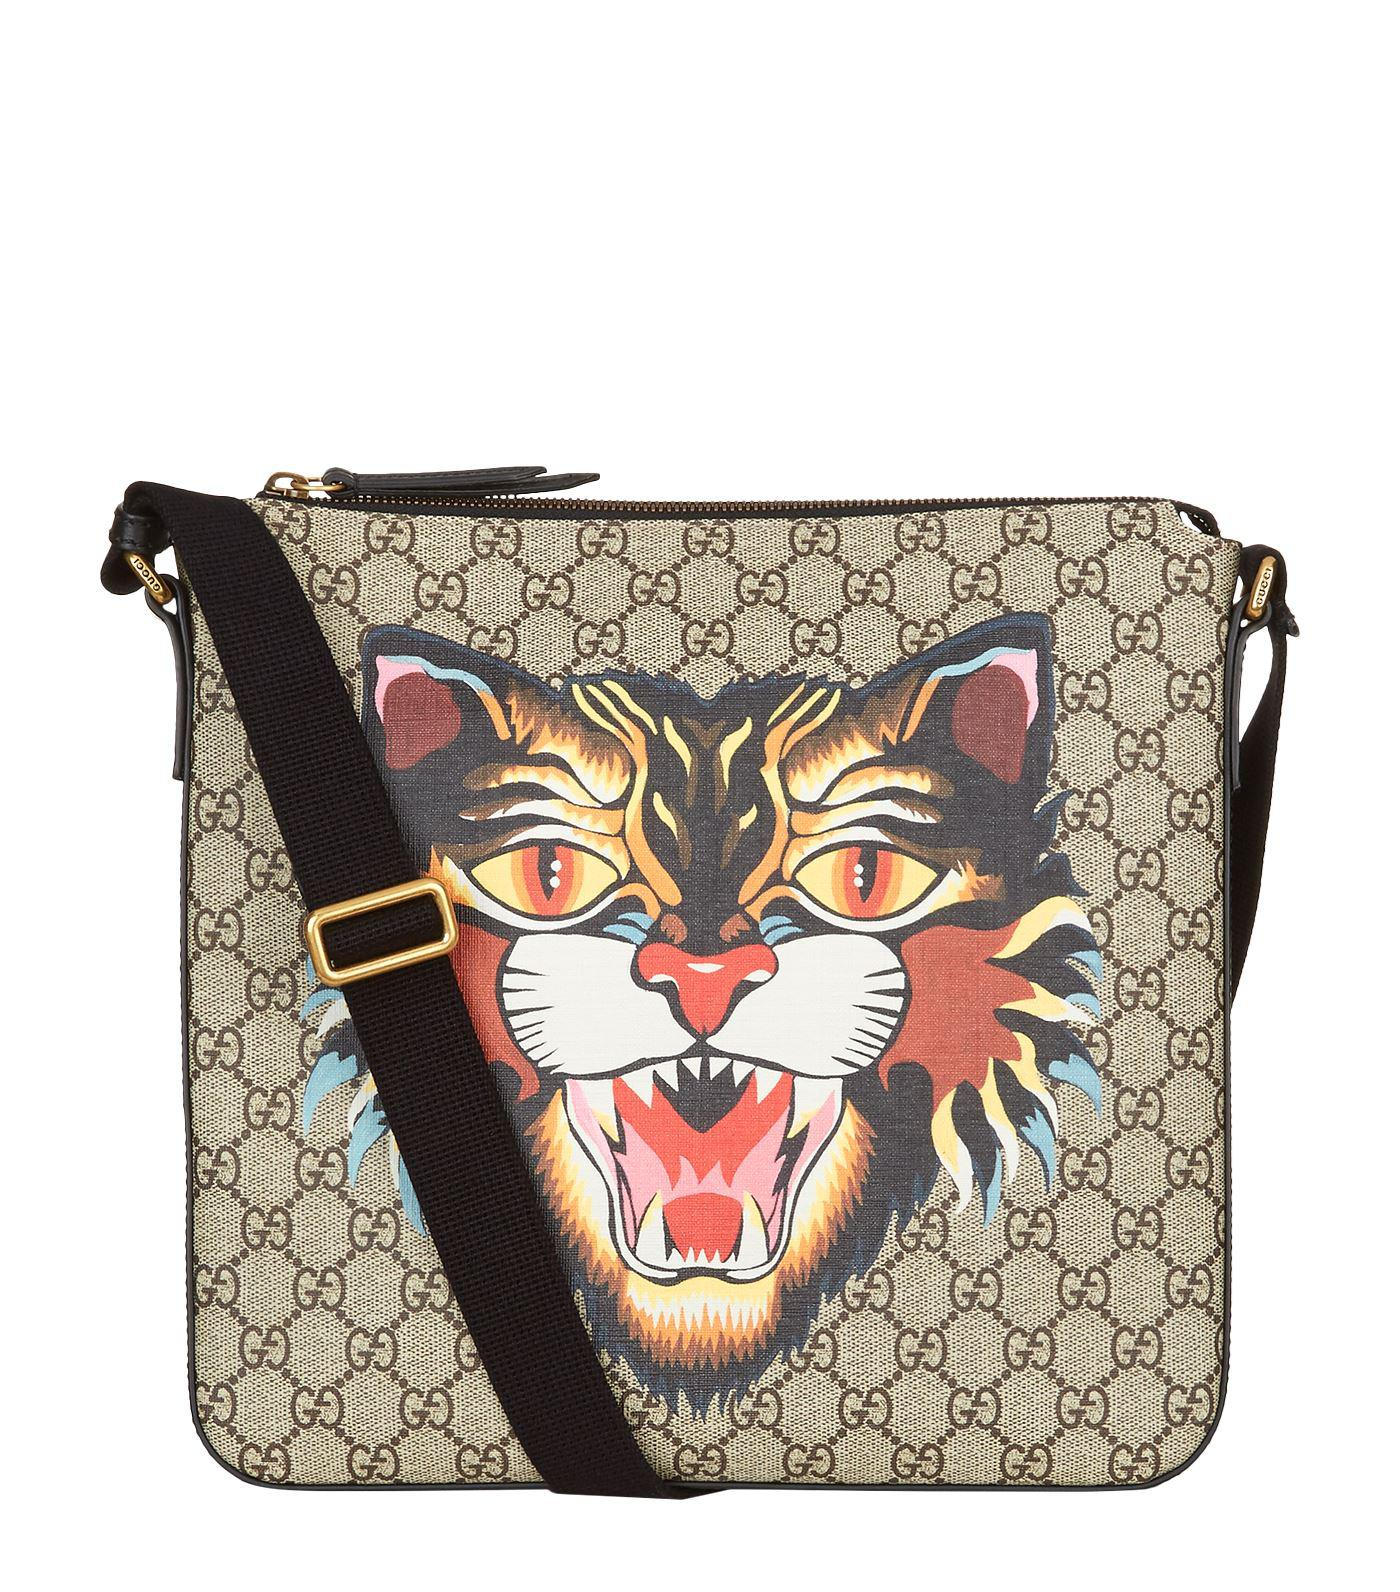 0f8439059135 Gucci Angry Cat Supreme Messenger Bag in Natural for Men - Lyst